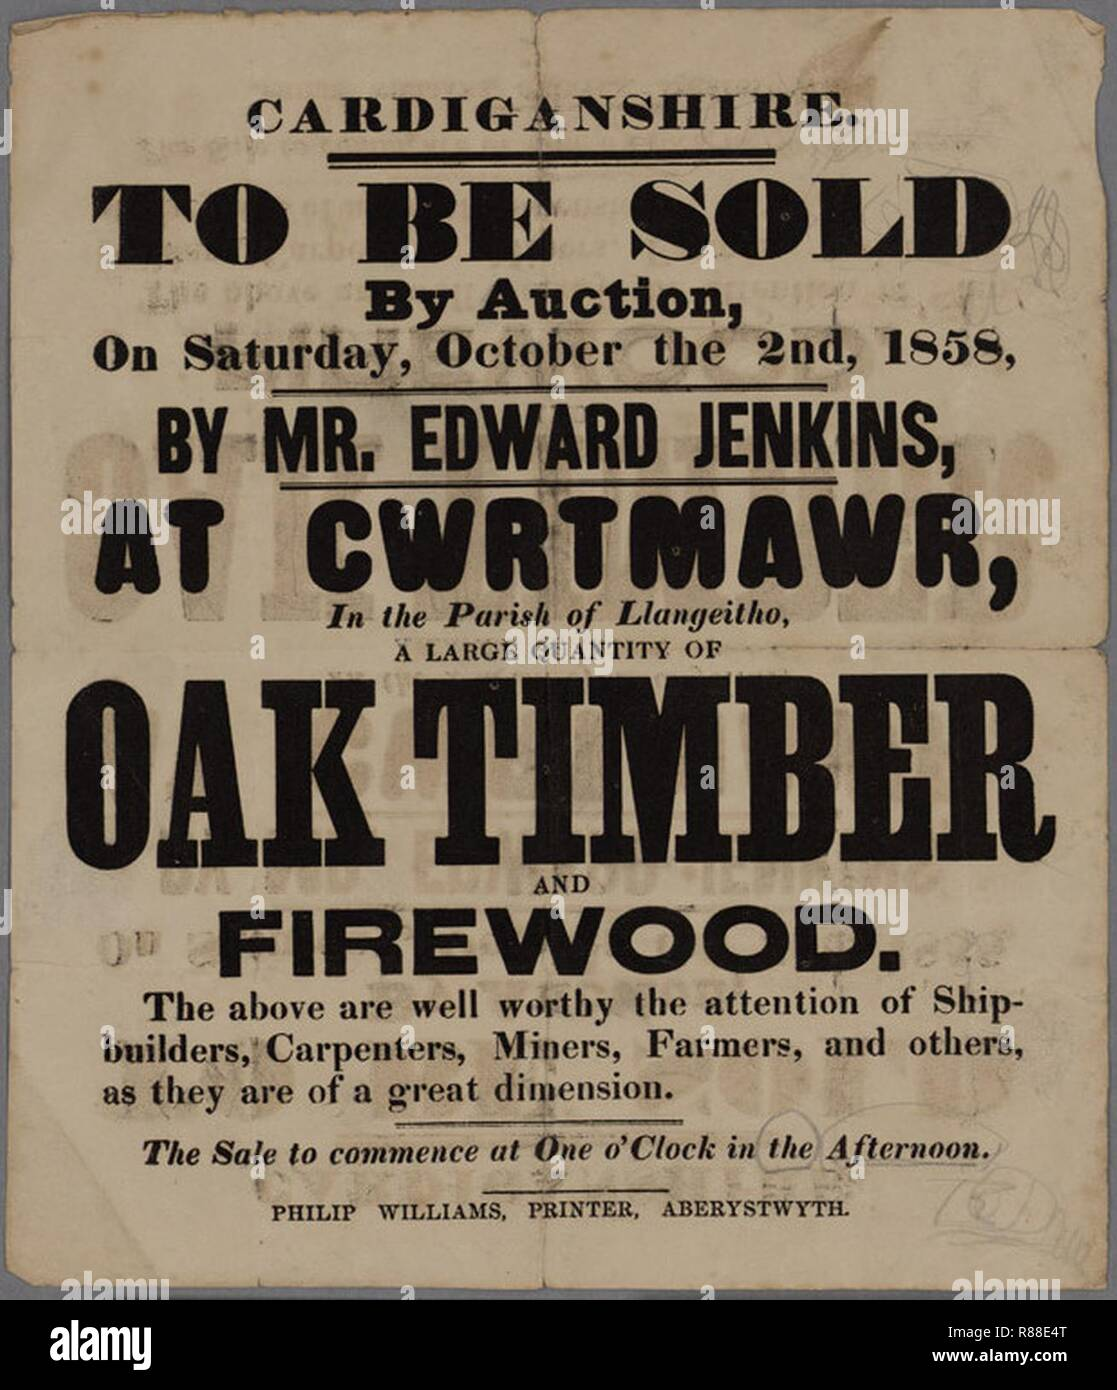 Cardiganshire To be sold by Auction Cwrtmawr 1858. - Stock Image